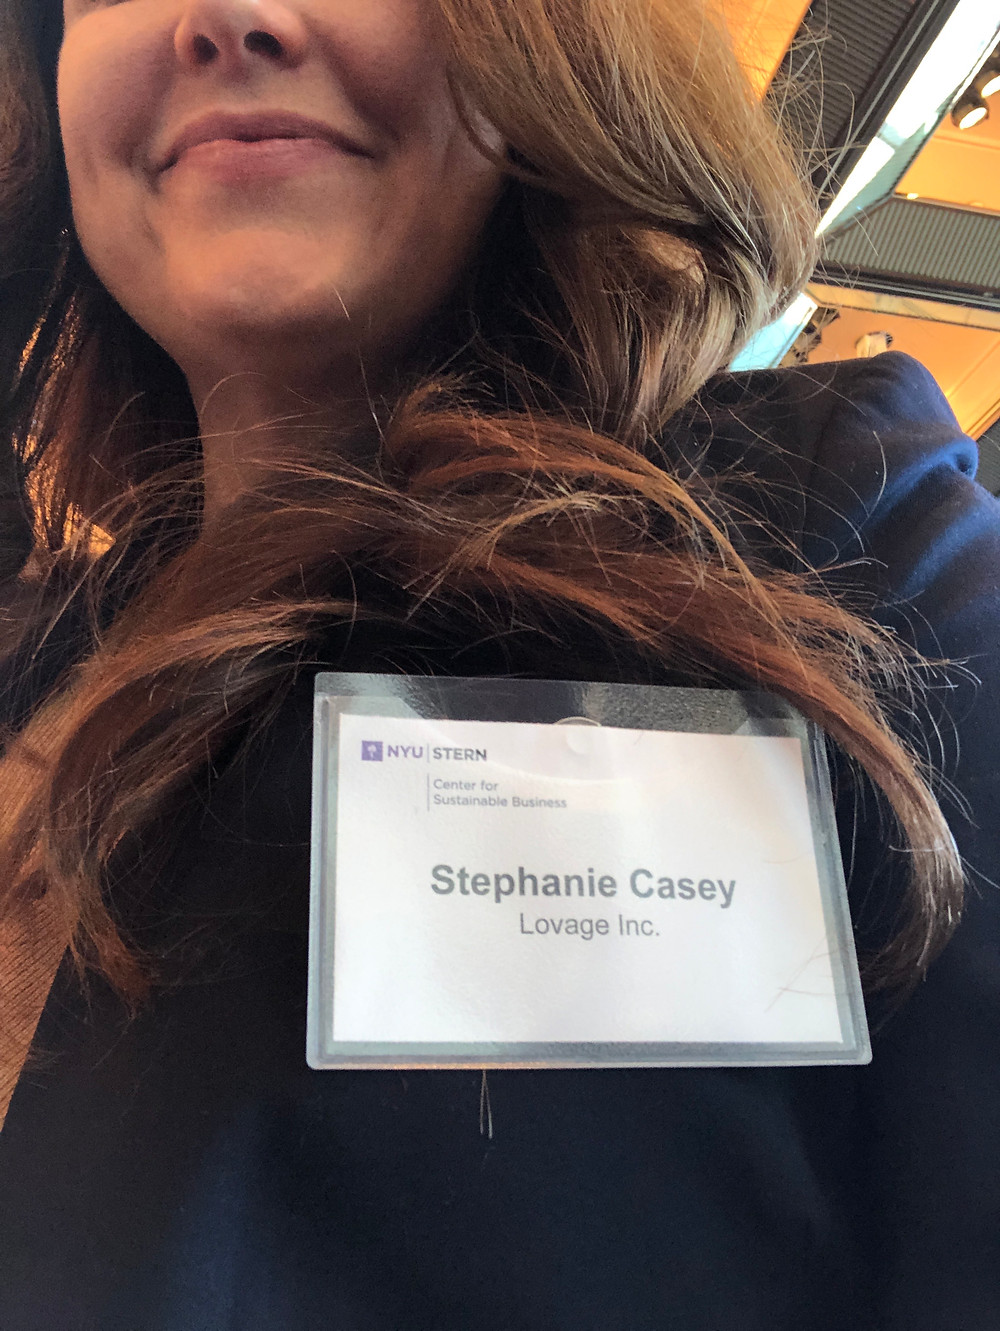 Lovage Inc. Founder, Stephanie M. Casey, wears her Stern Center For Sustainable Business Name Badge